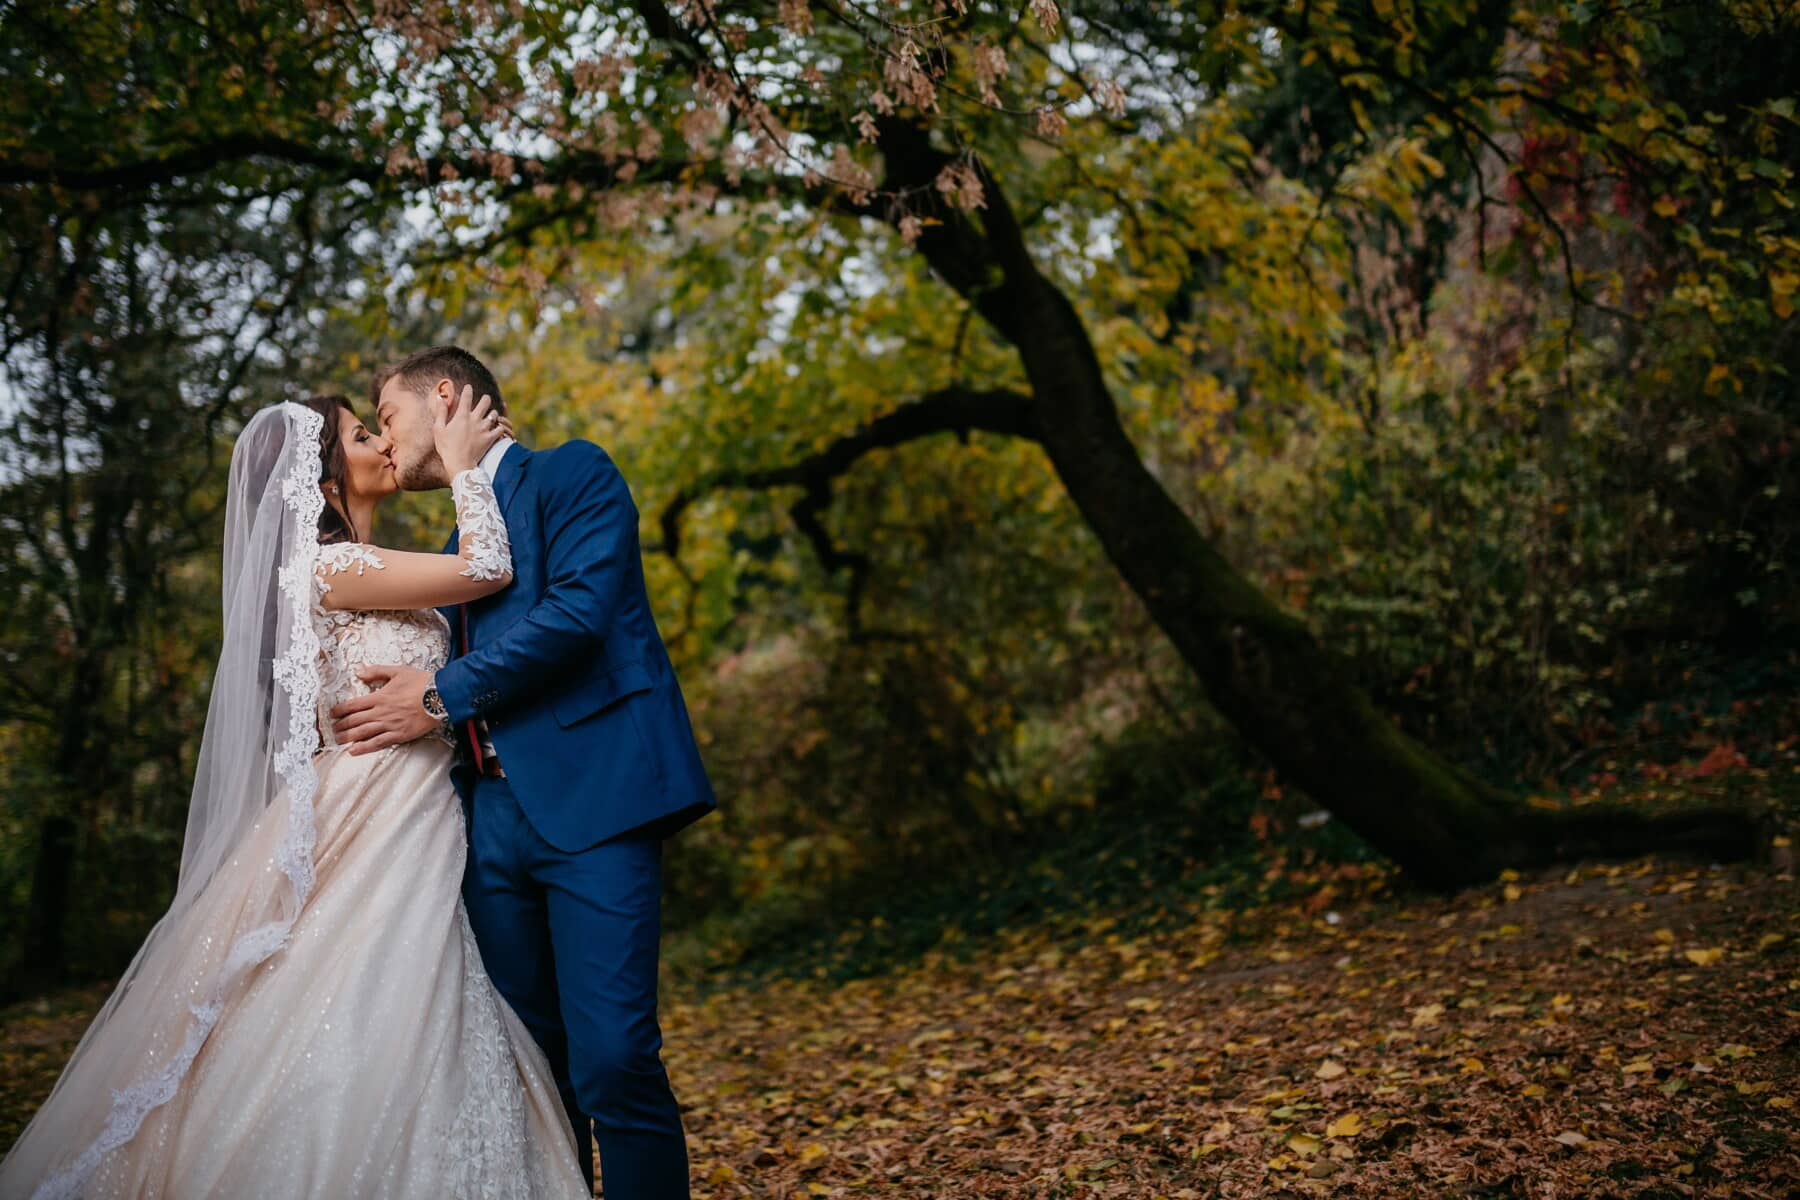 bride, kiss, romantic, groom, wedding dress, forest, autumn, love, engagement, girl